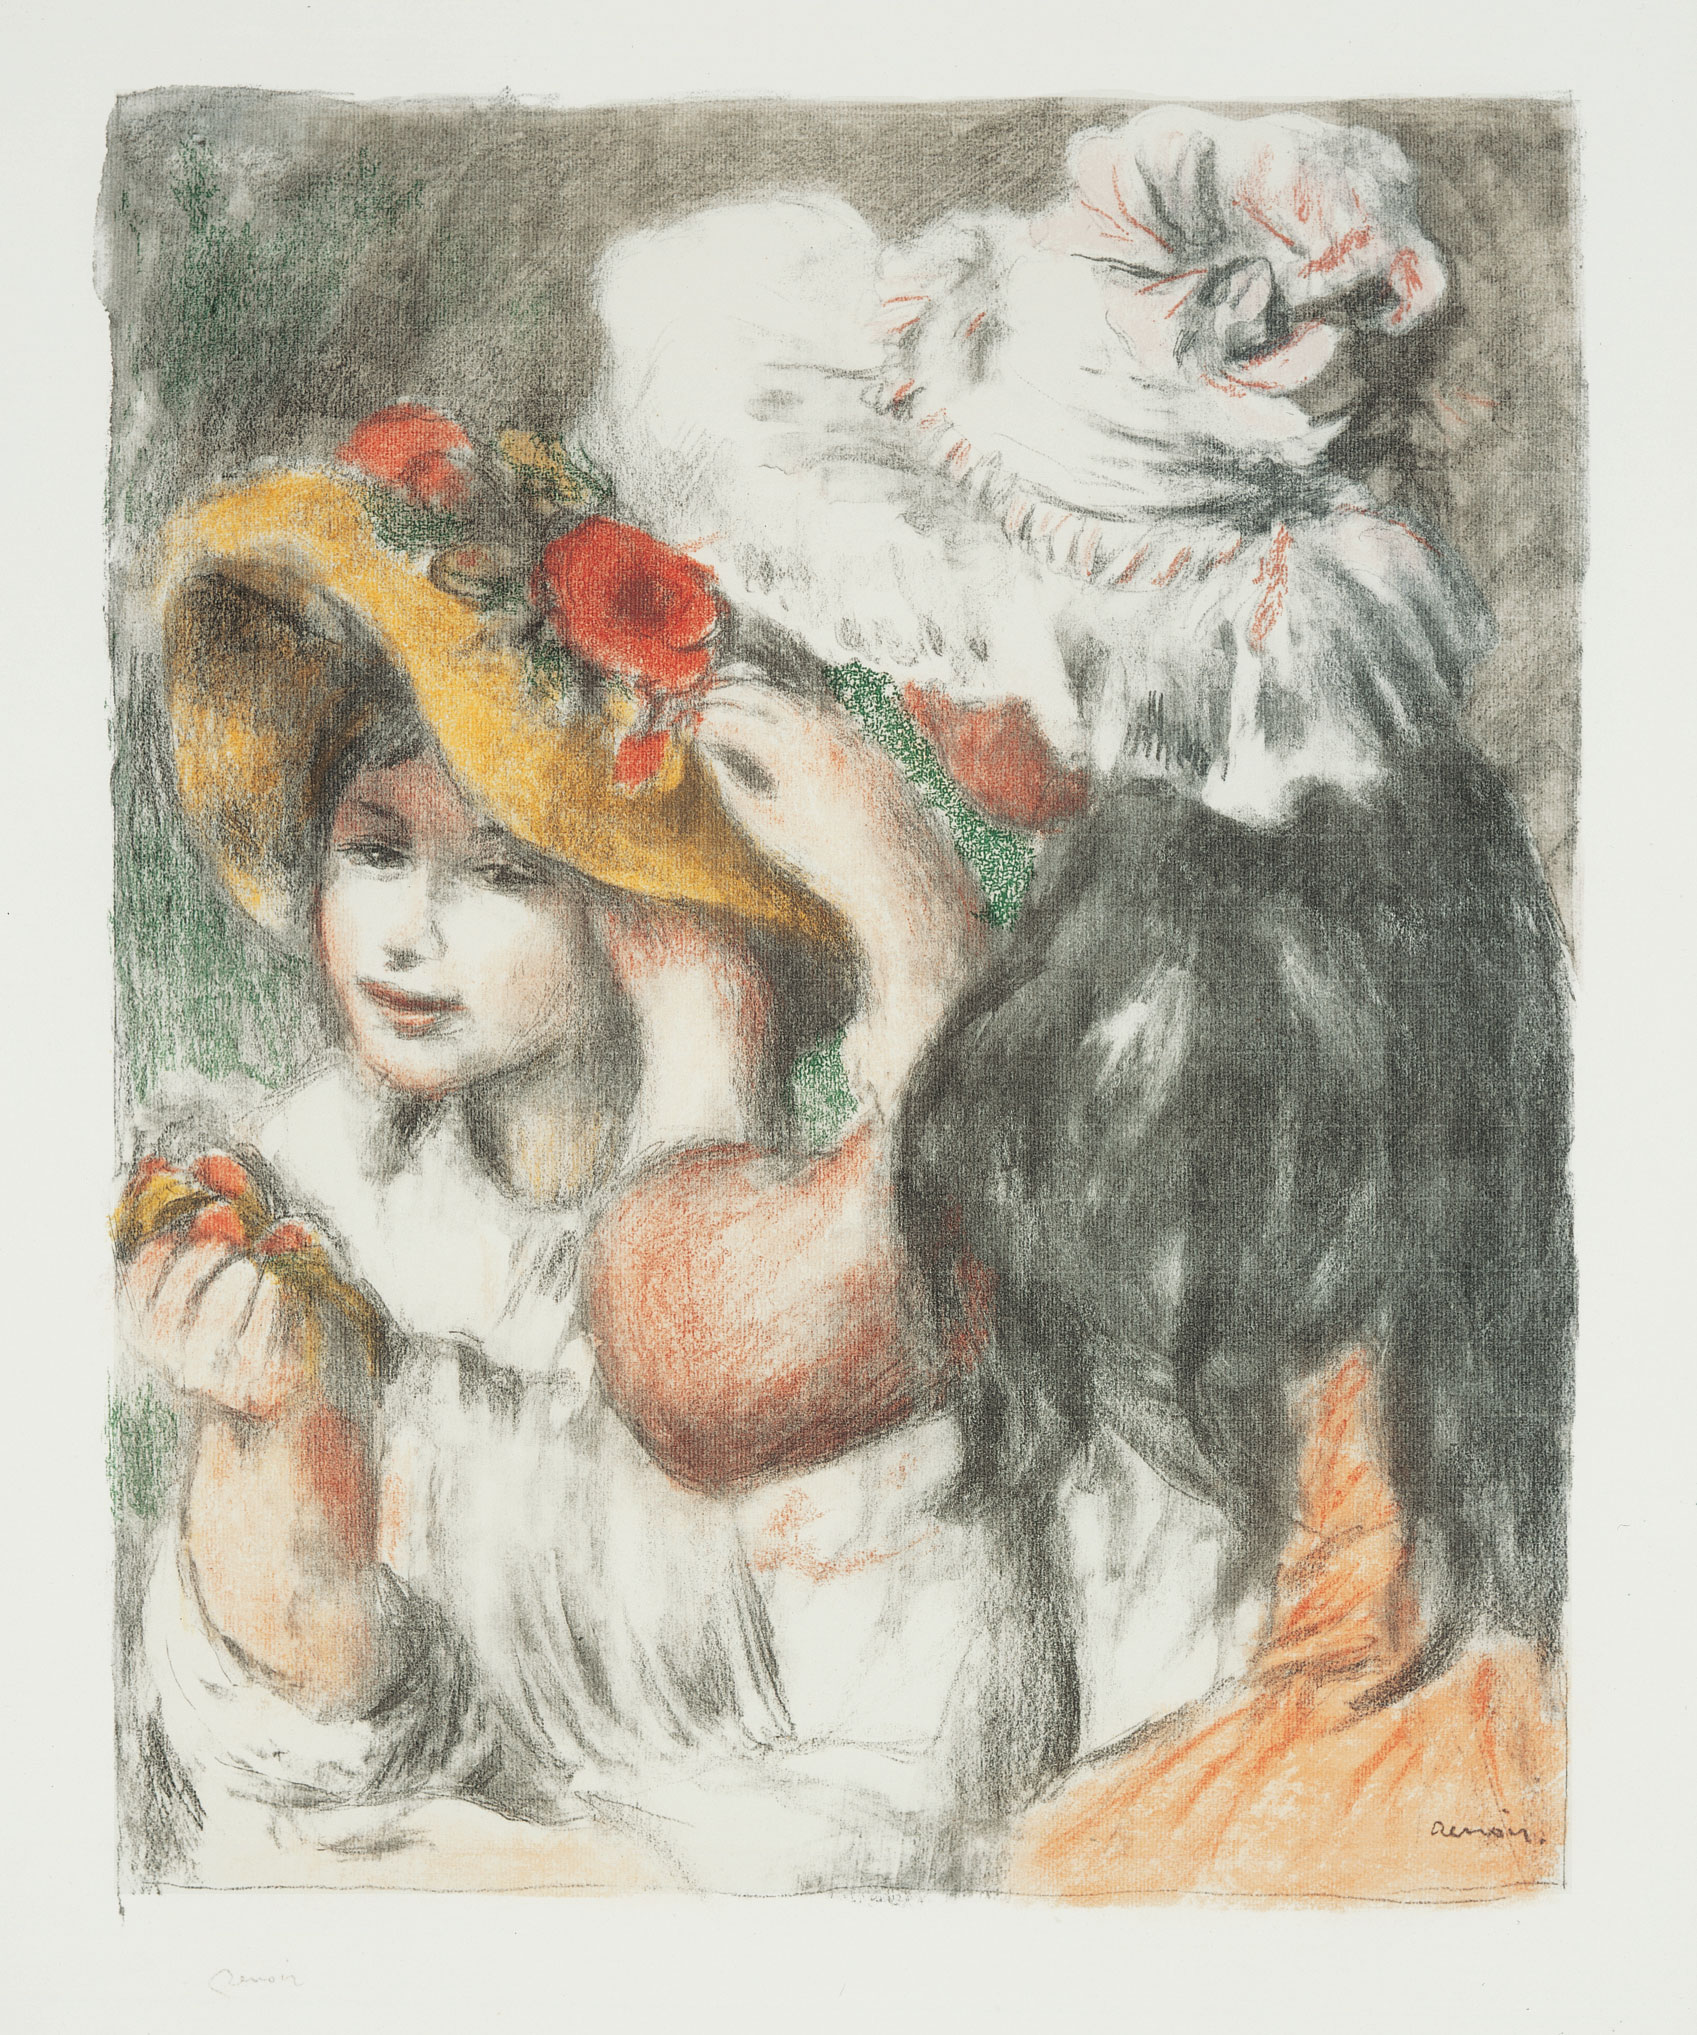 An older girl pins a flower on the hat of a young girl.